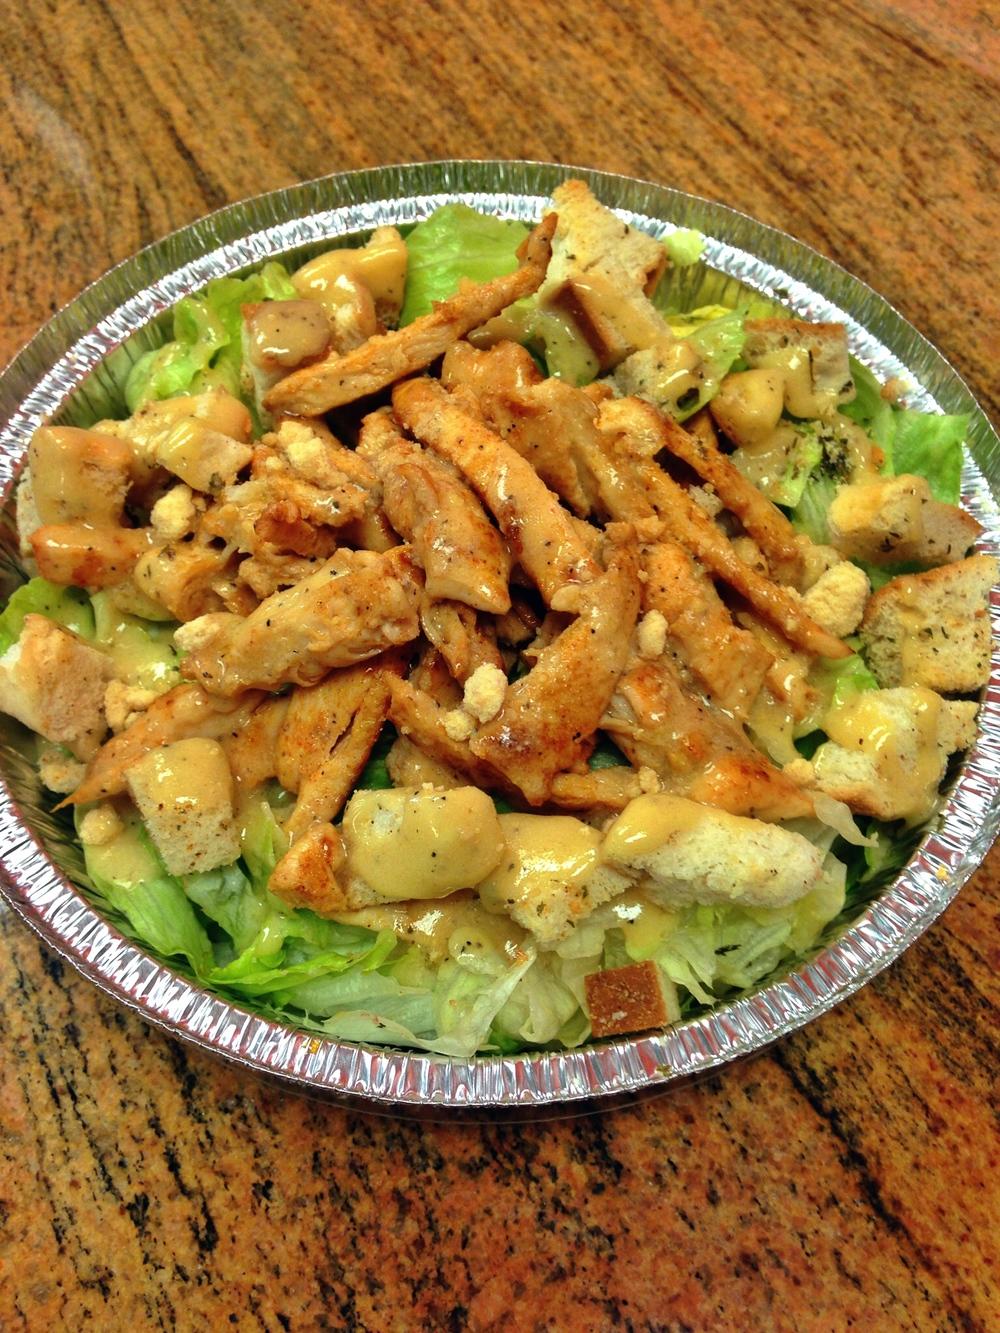 Grilled Chicken Ceasar salad.JPG